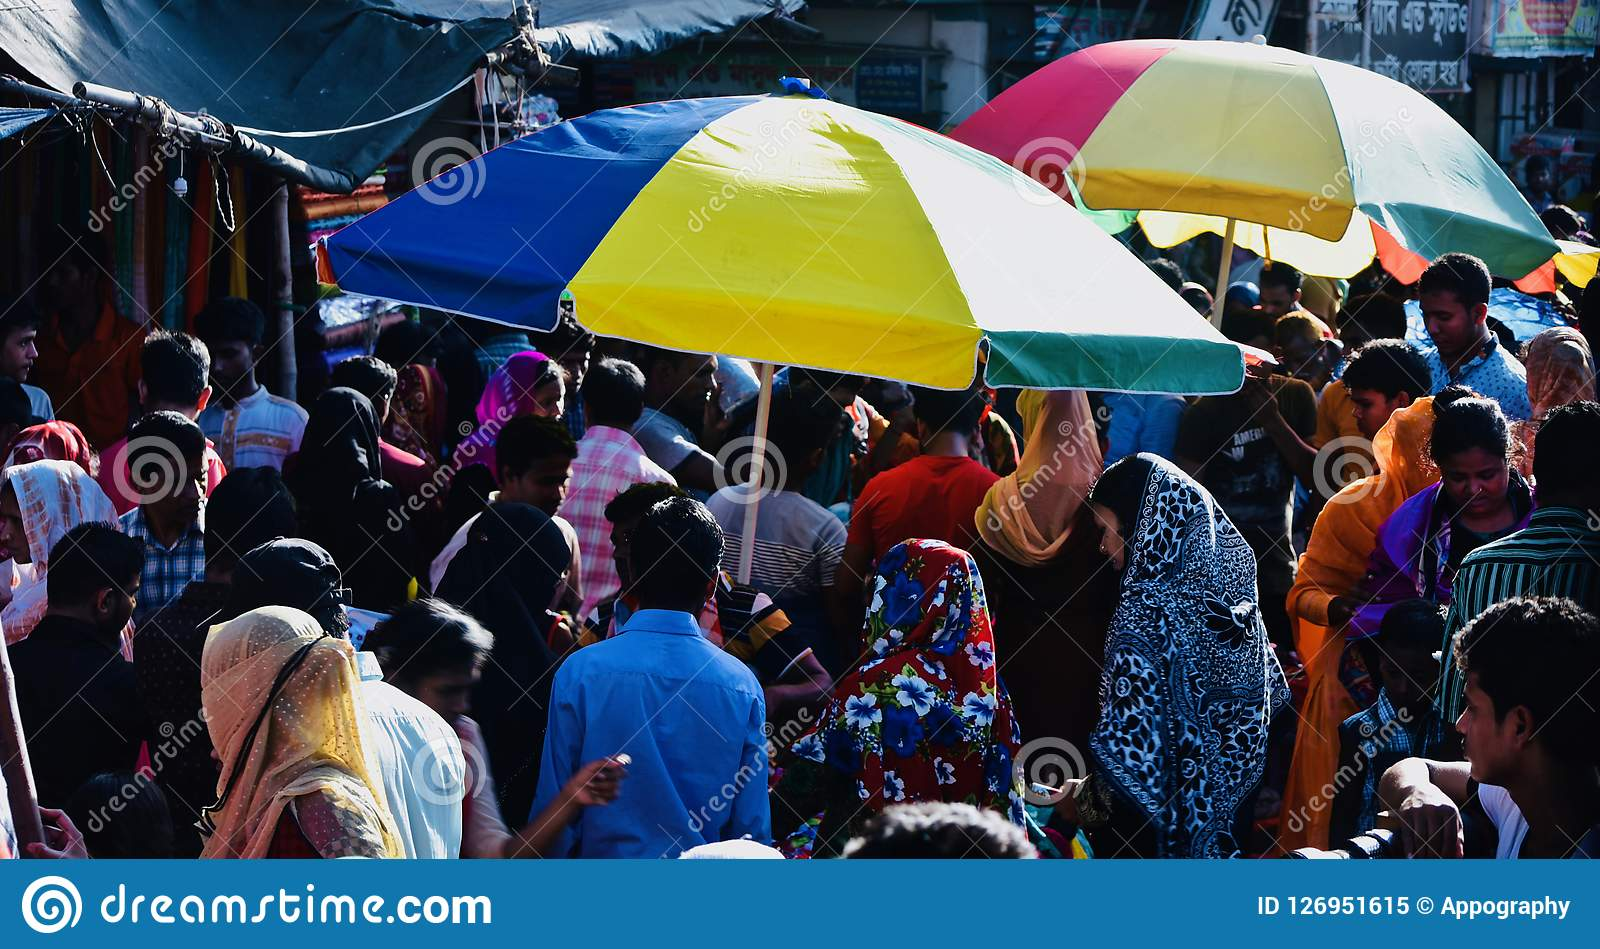 A crowded marketplace in Bangladesh unique photo